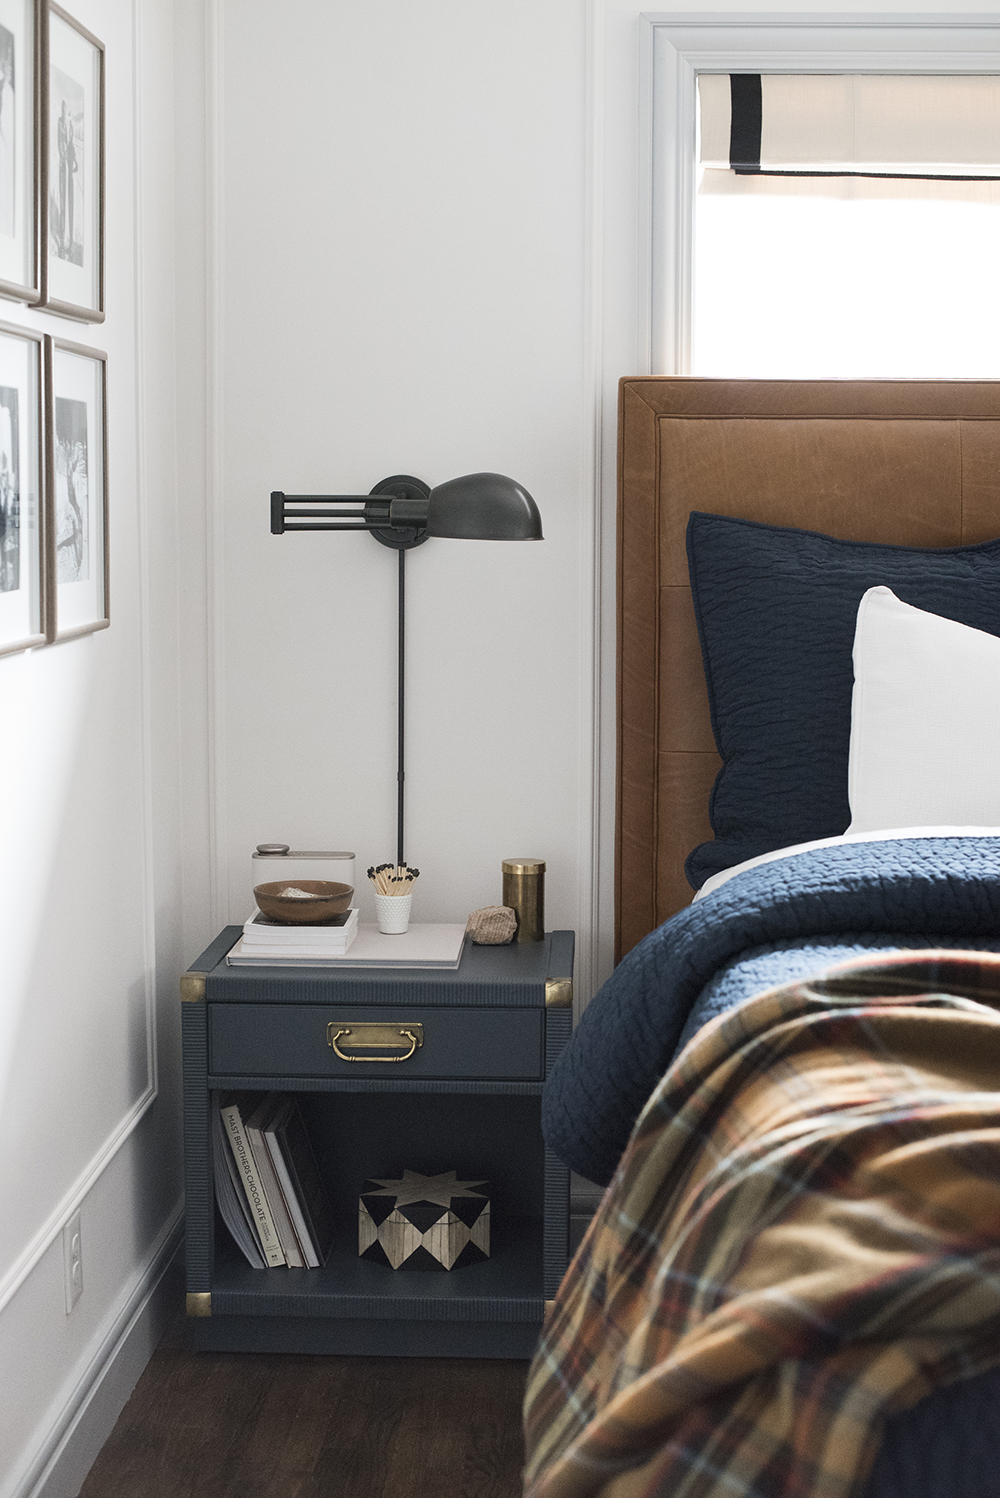 Cozy Master Bedroom For Fall And Winter With Plaid Bedding    Roomfortuedsay.com